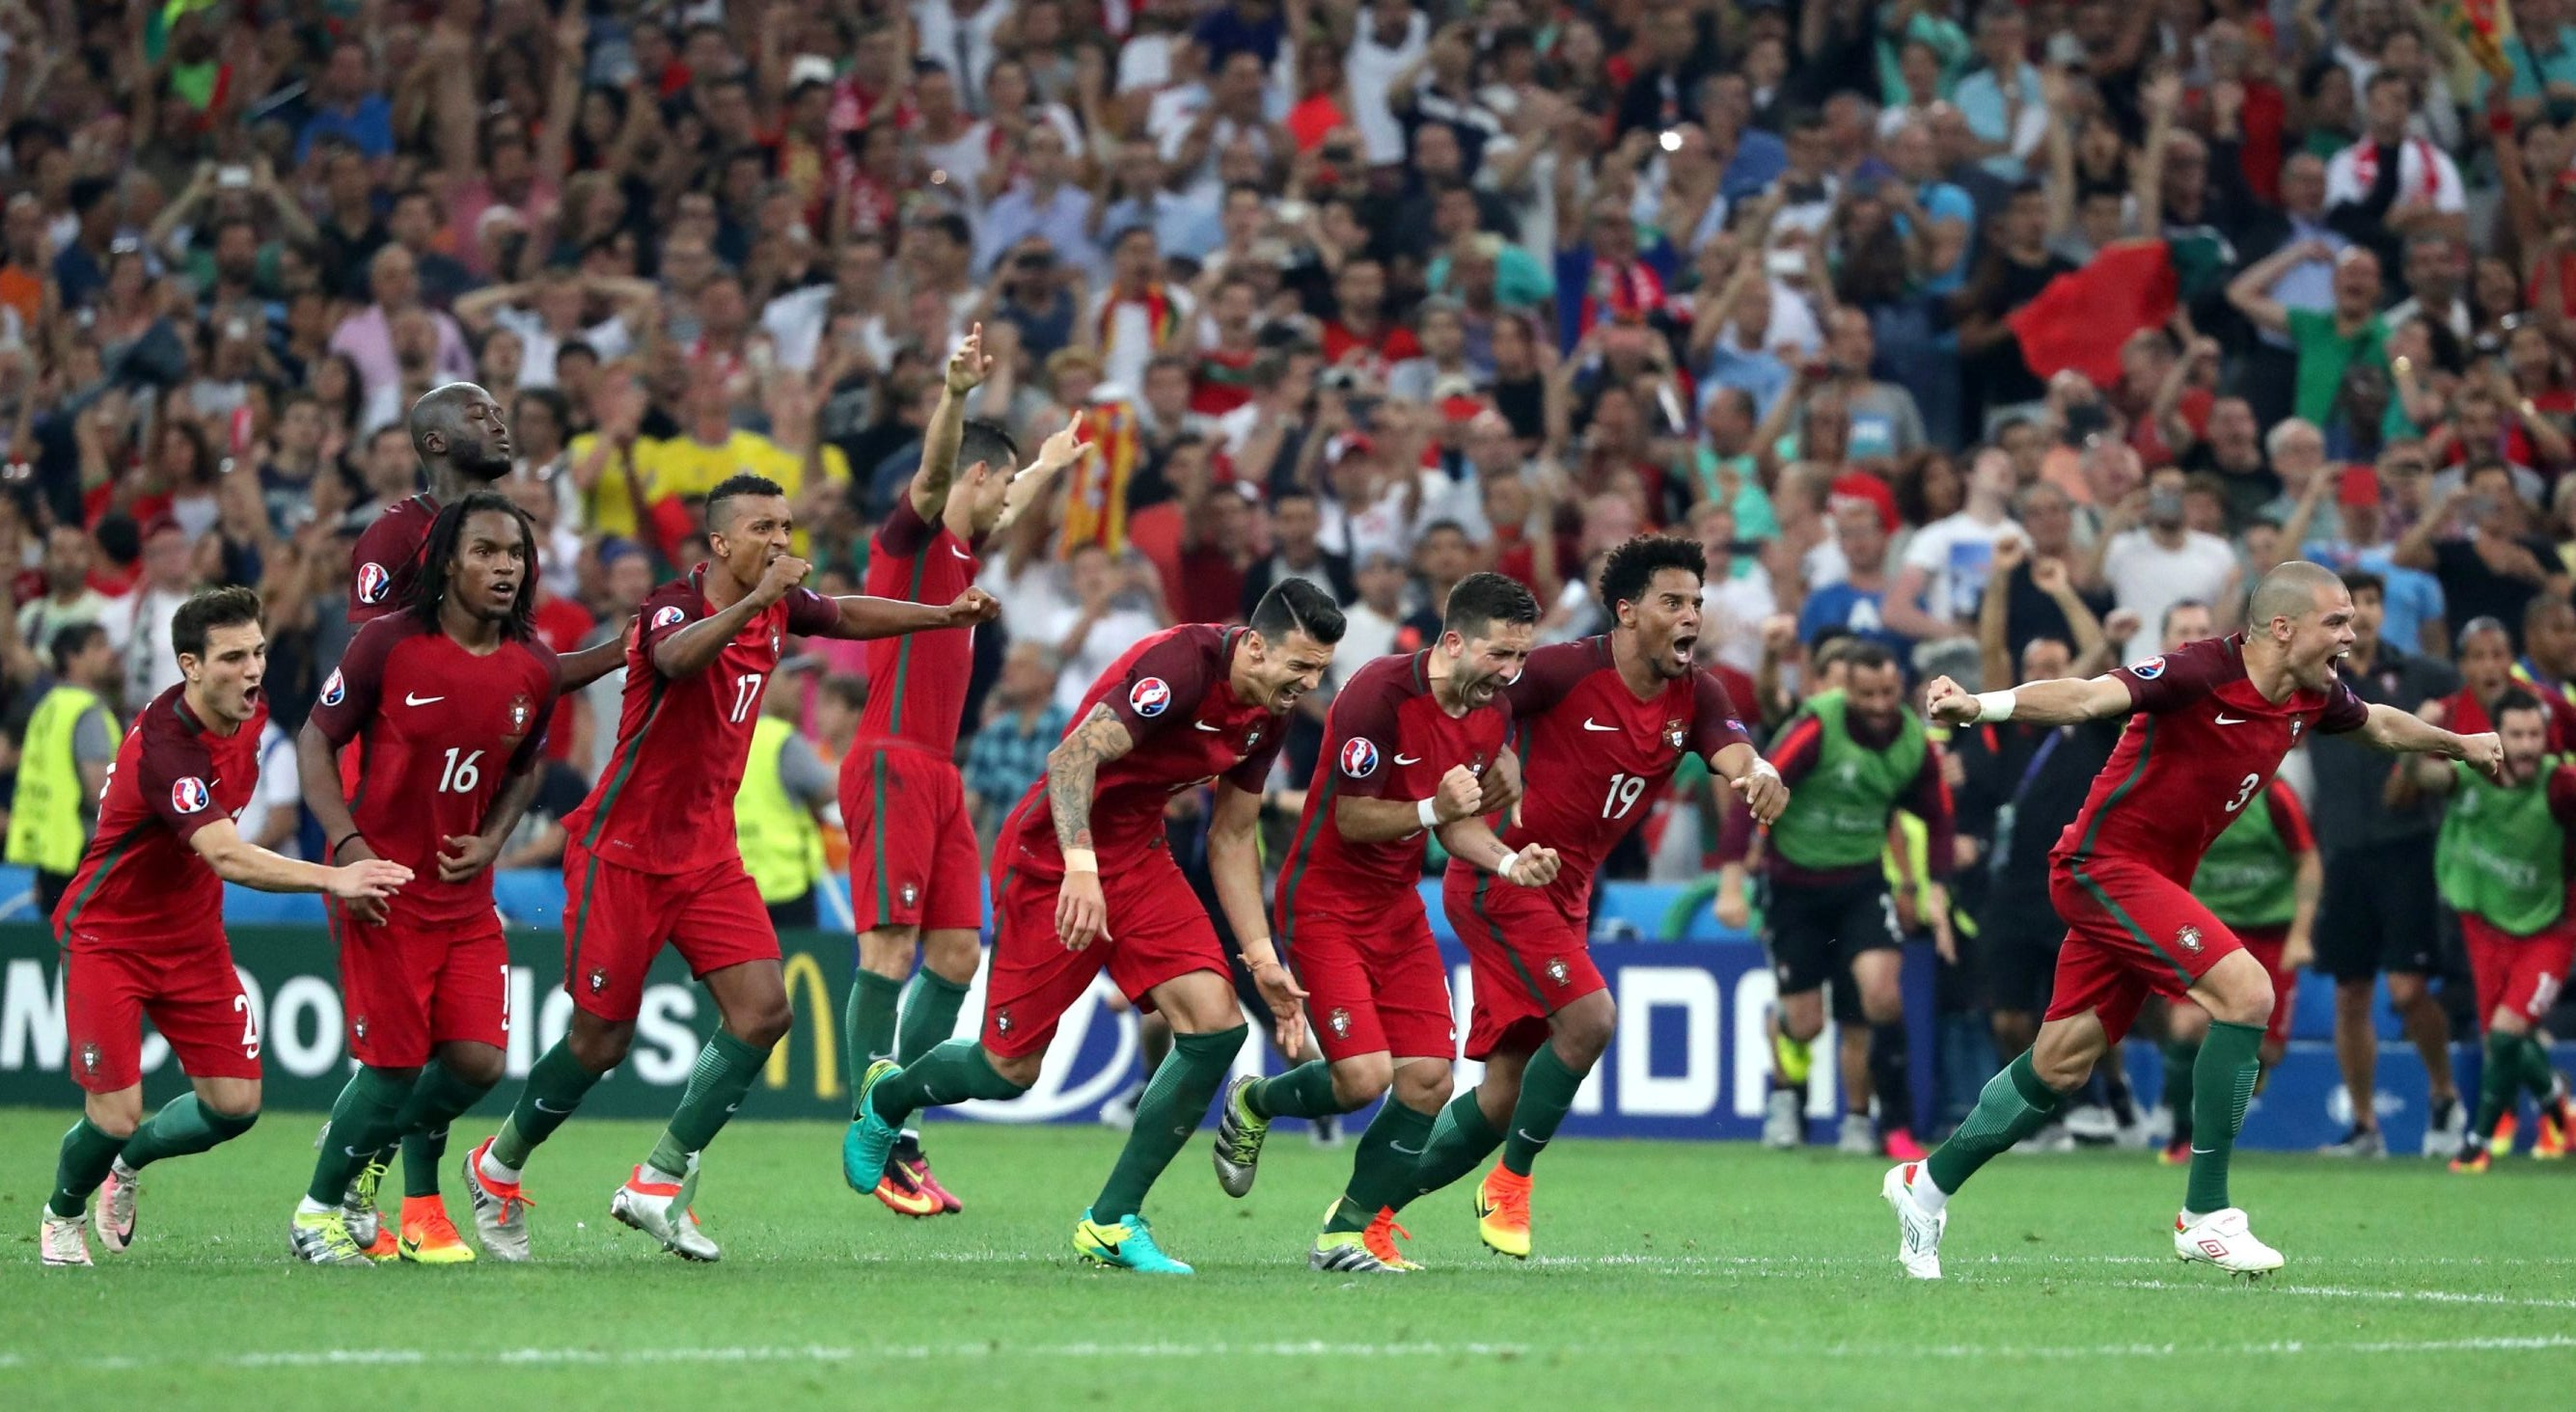 Portugal mais perto da final do Euro2016